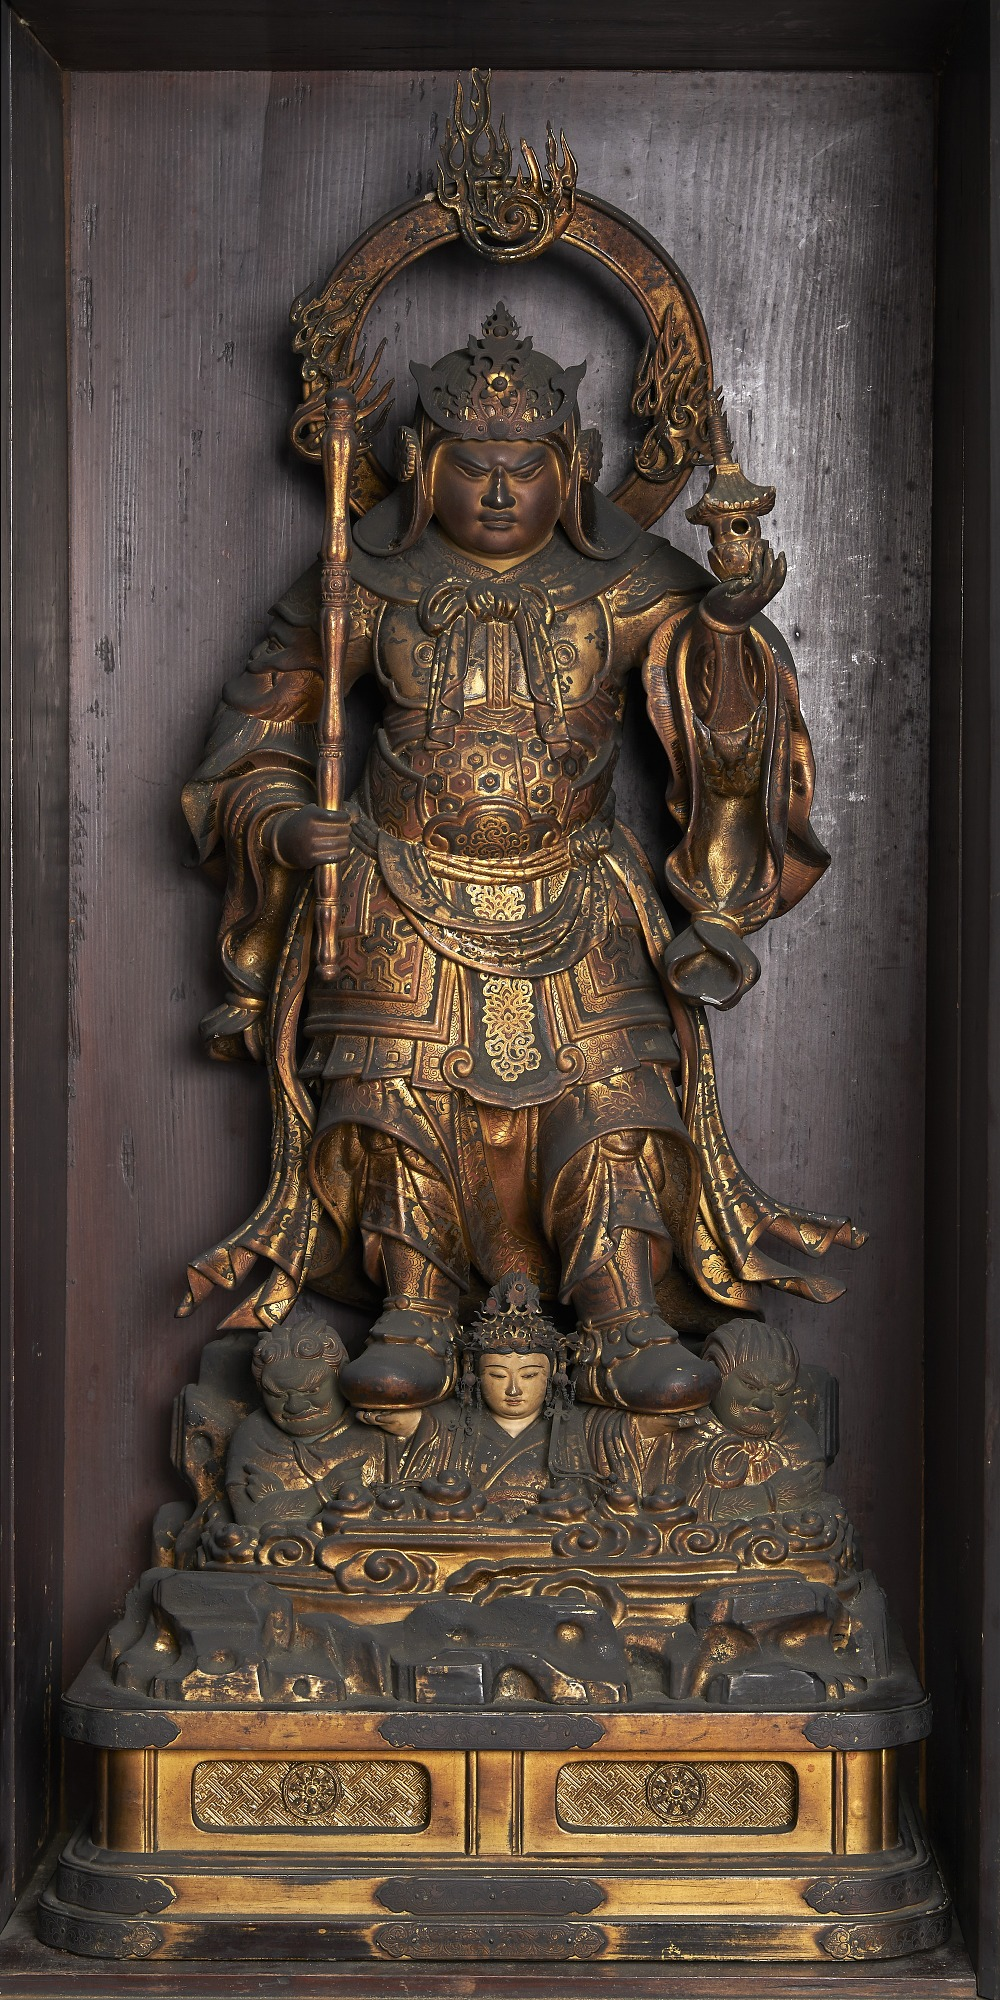 Figure: within a closed shrine